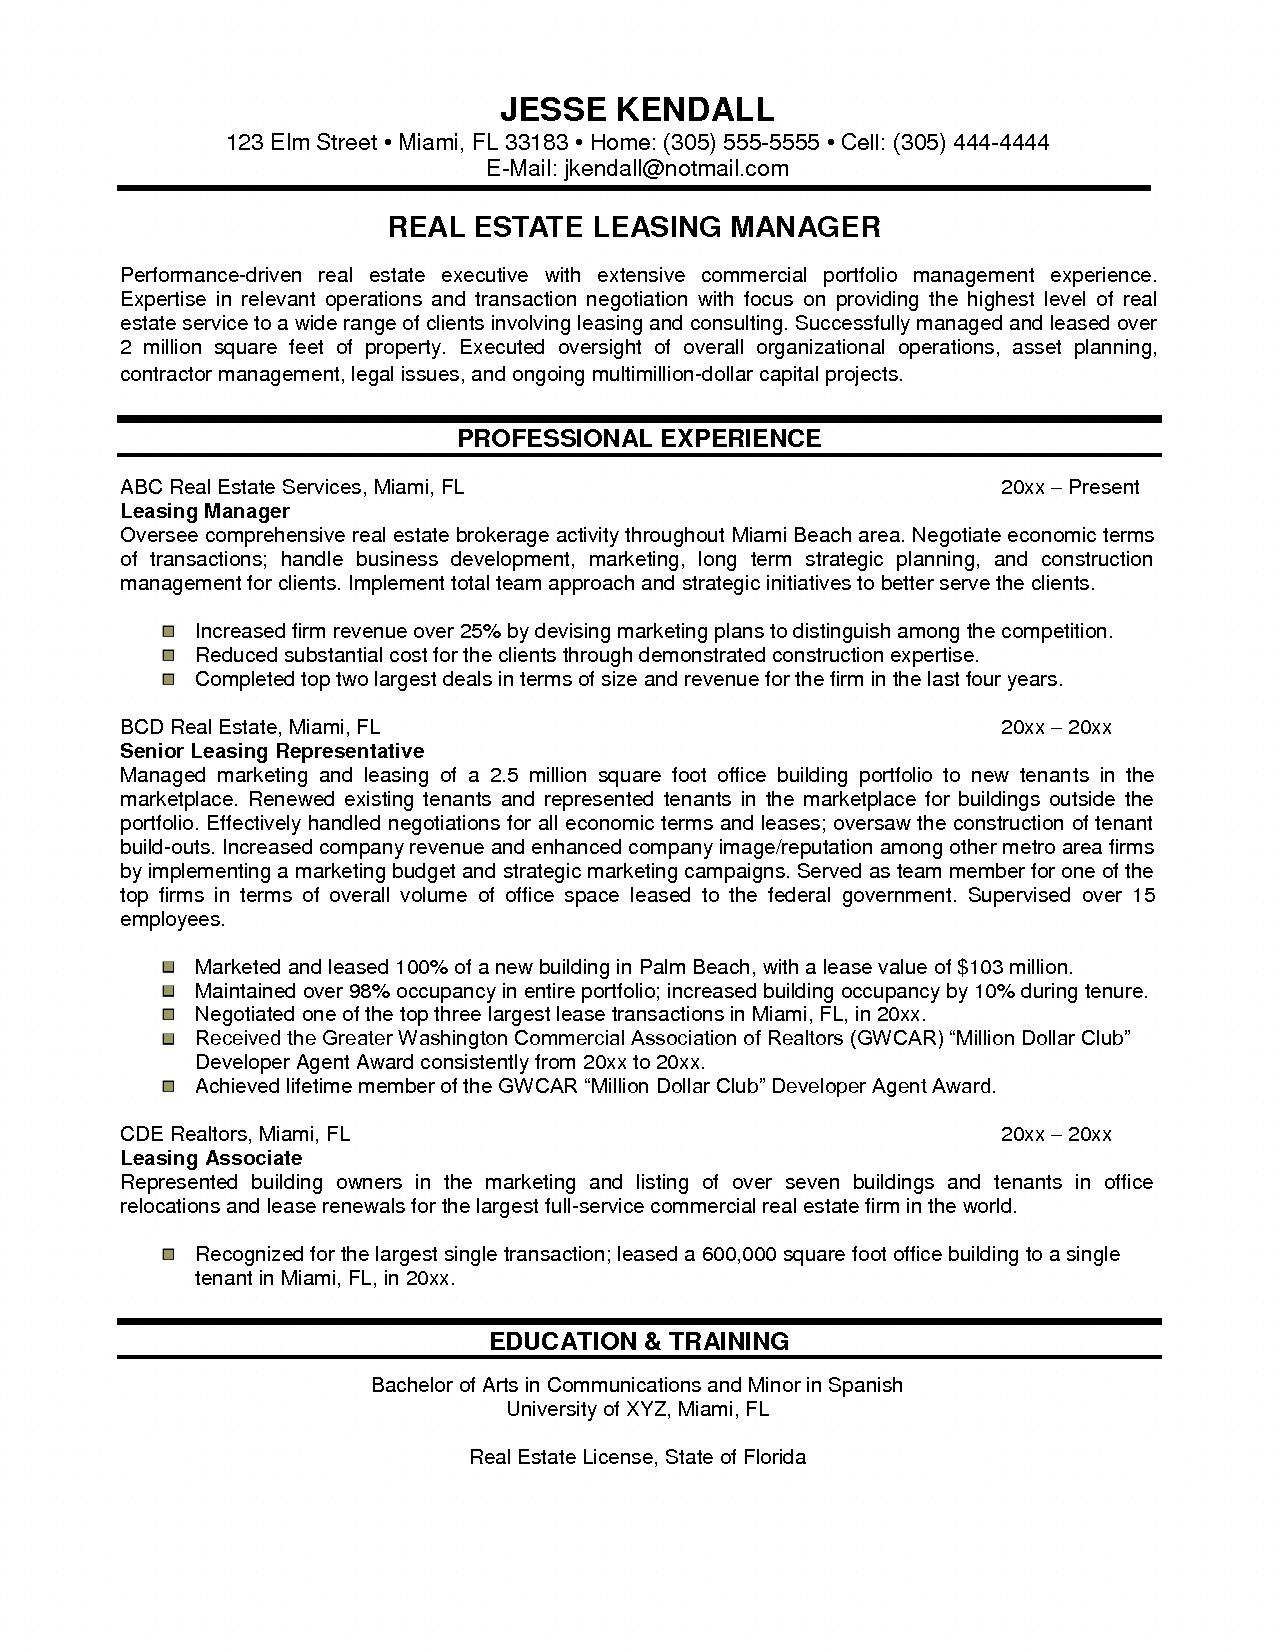 Commercial Property Manager Resume Samples Building Interested In Becoming A Learn About Making